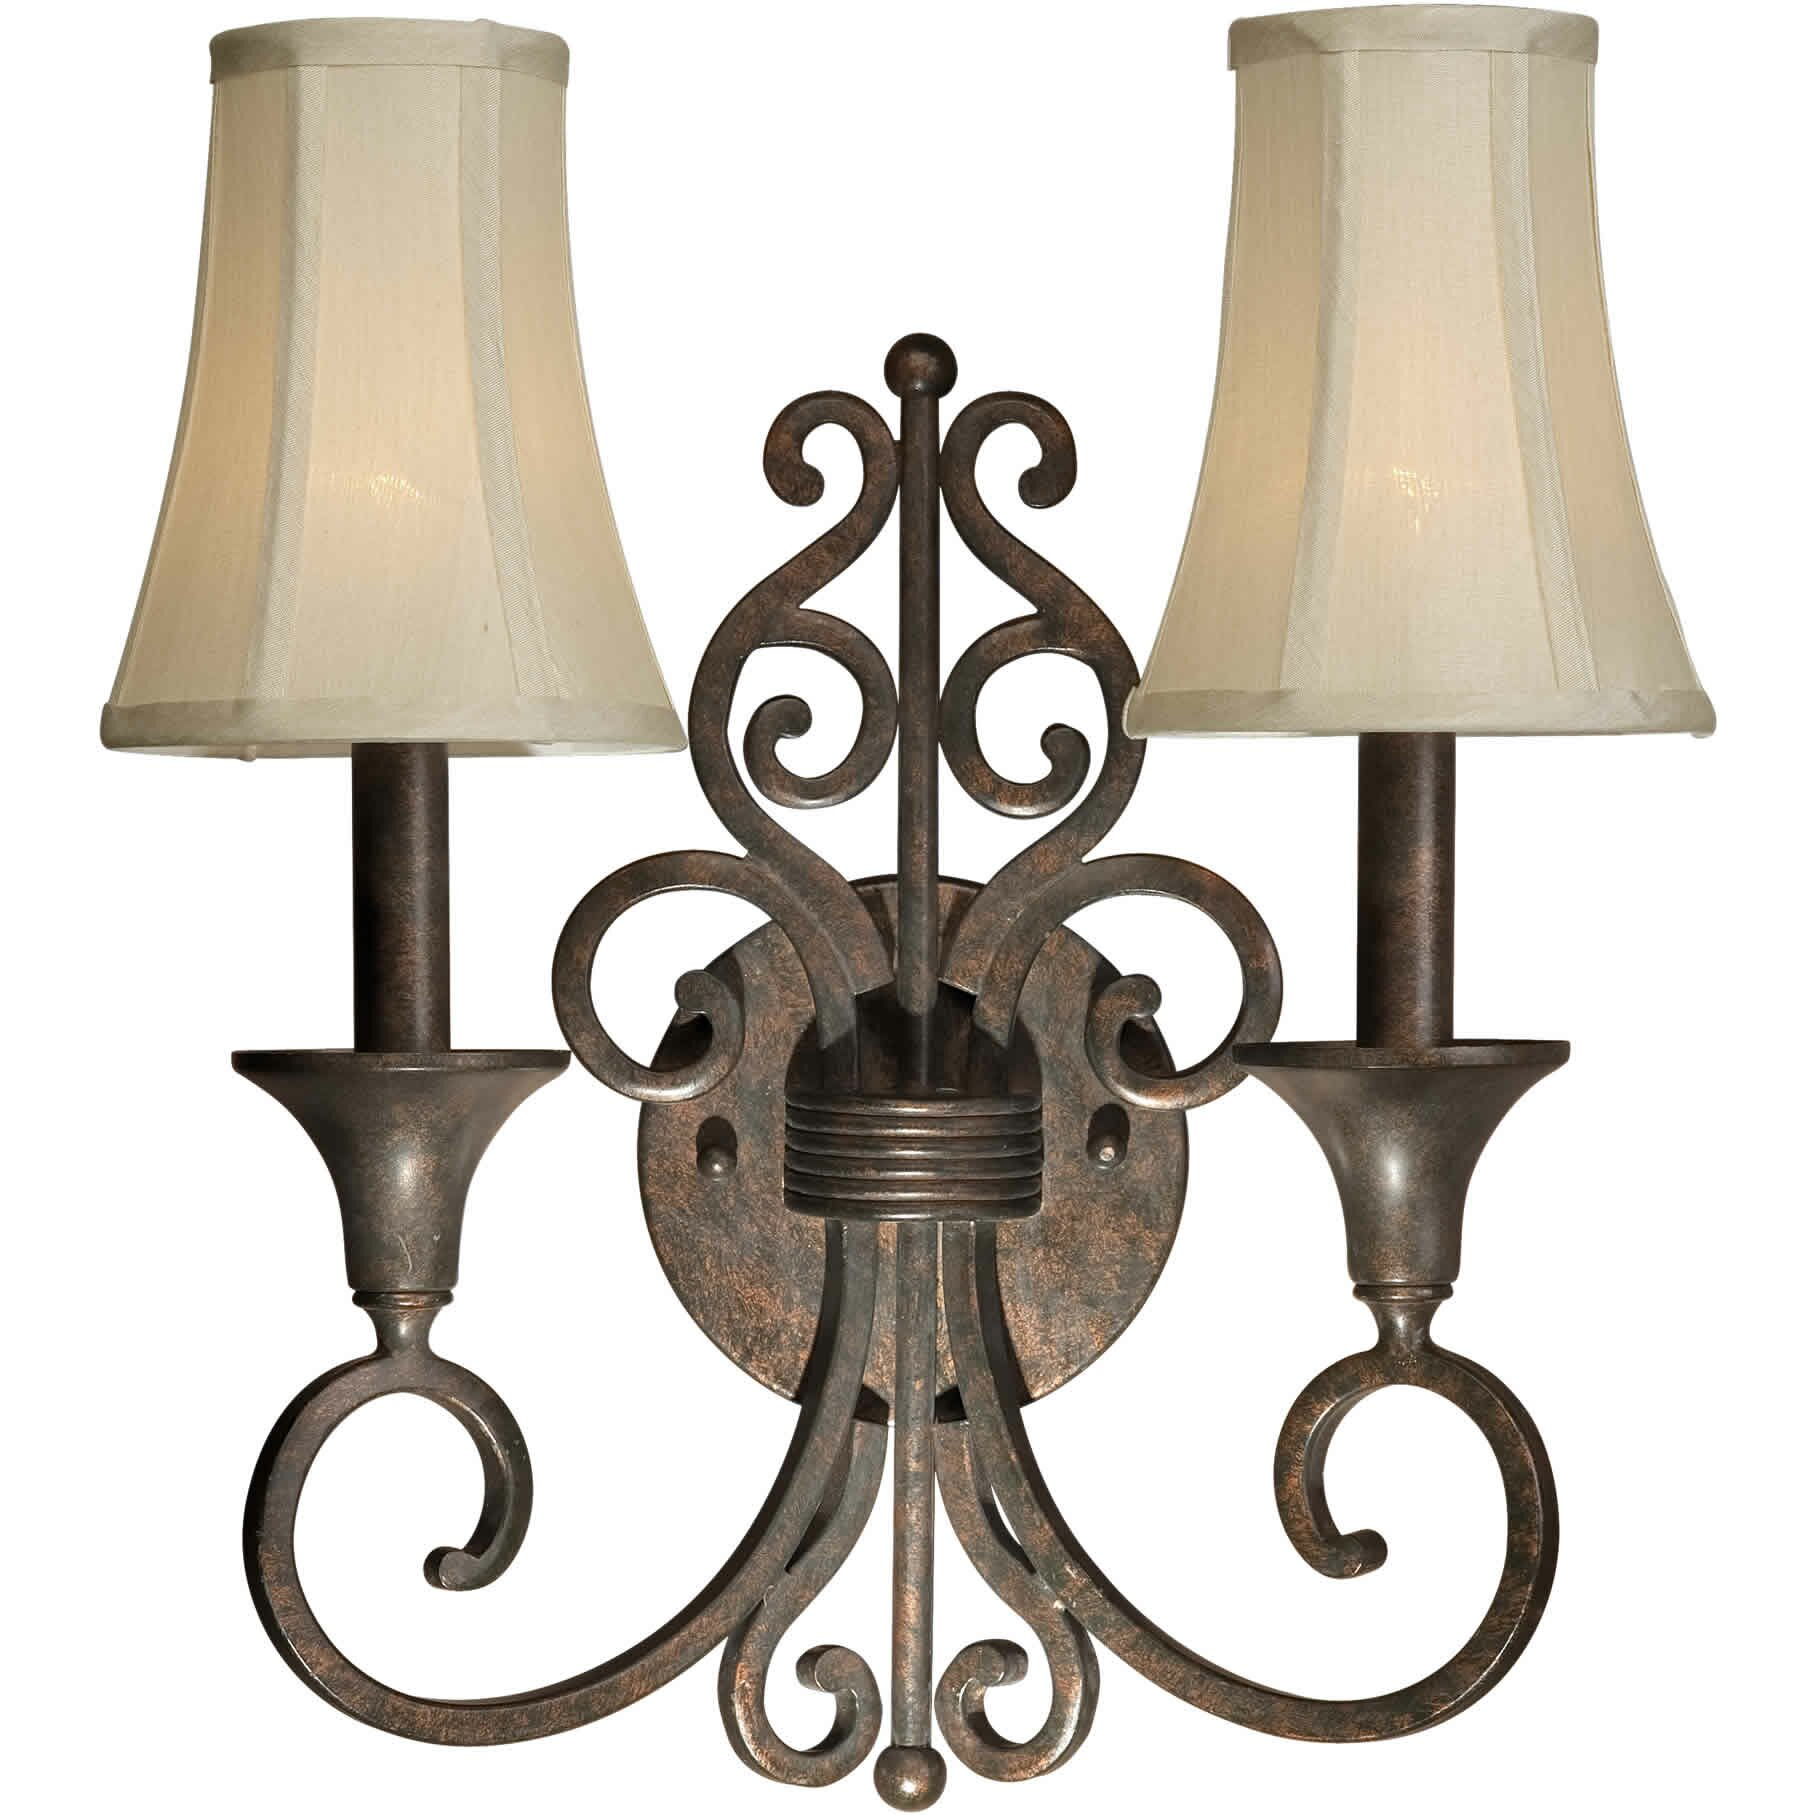 Wall Sconces At Wayfair : Forte Lighting 2 Light Wall Sconce & Reviews Wayfair